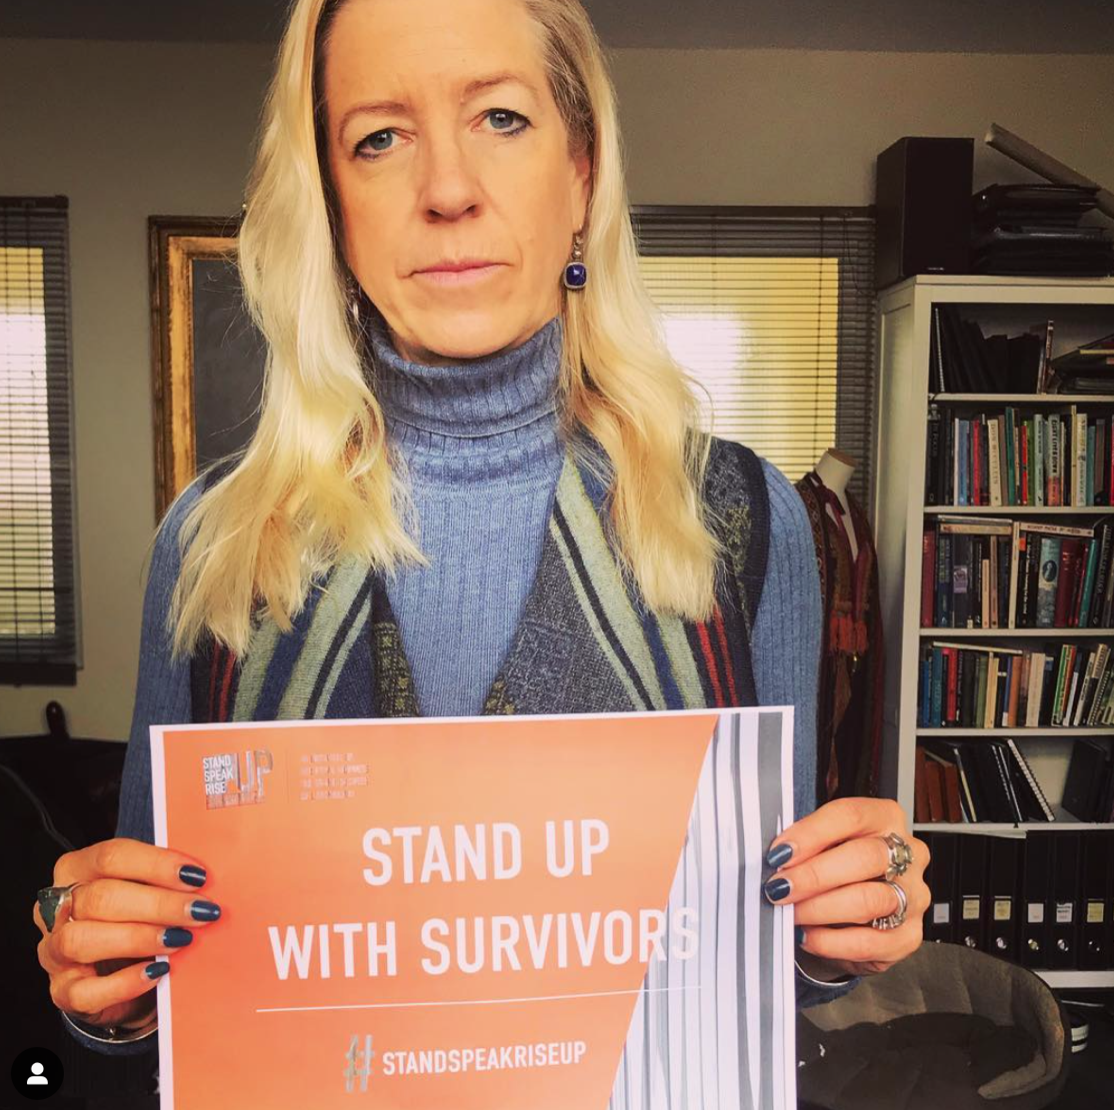 """""""We might not end war. But we will end rape as a weapon. I STAND UP with survivors. Will you too?""""    #standspeakriseup"""